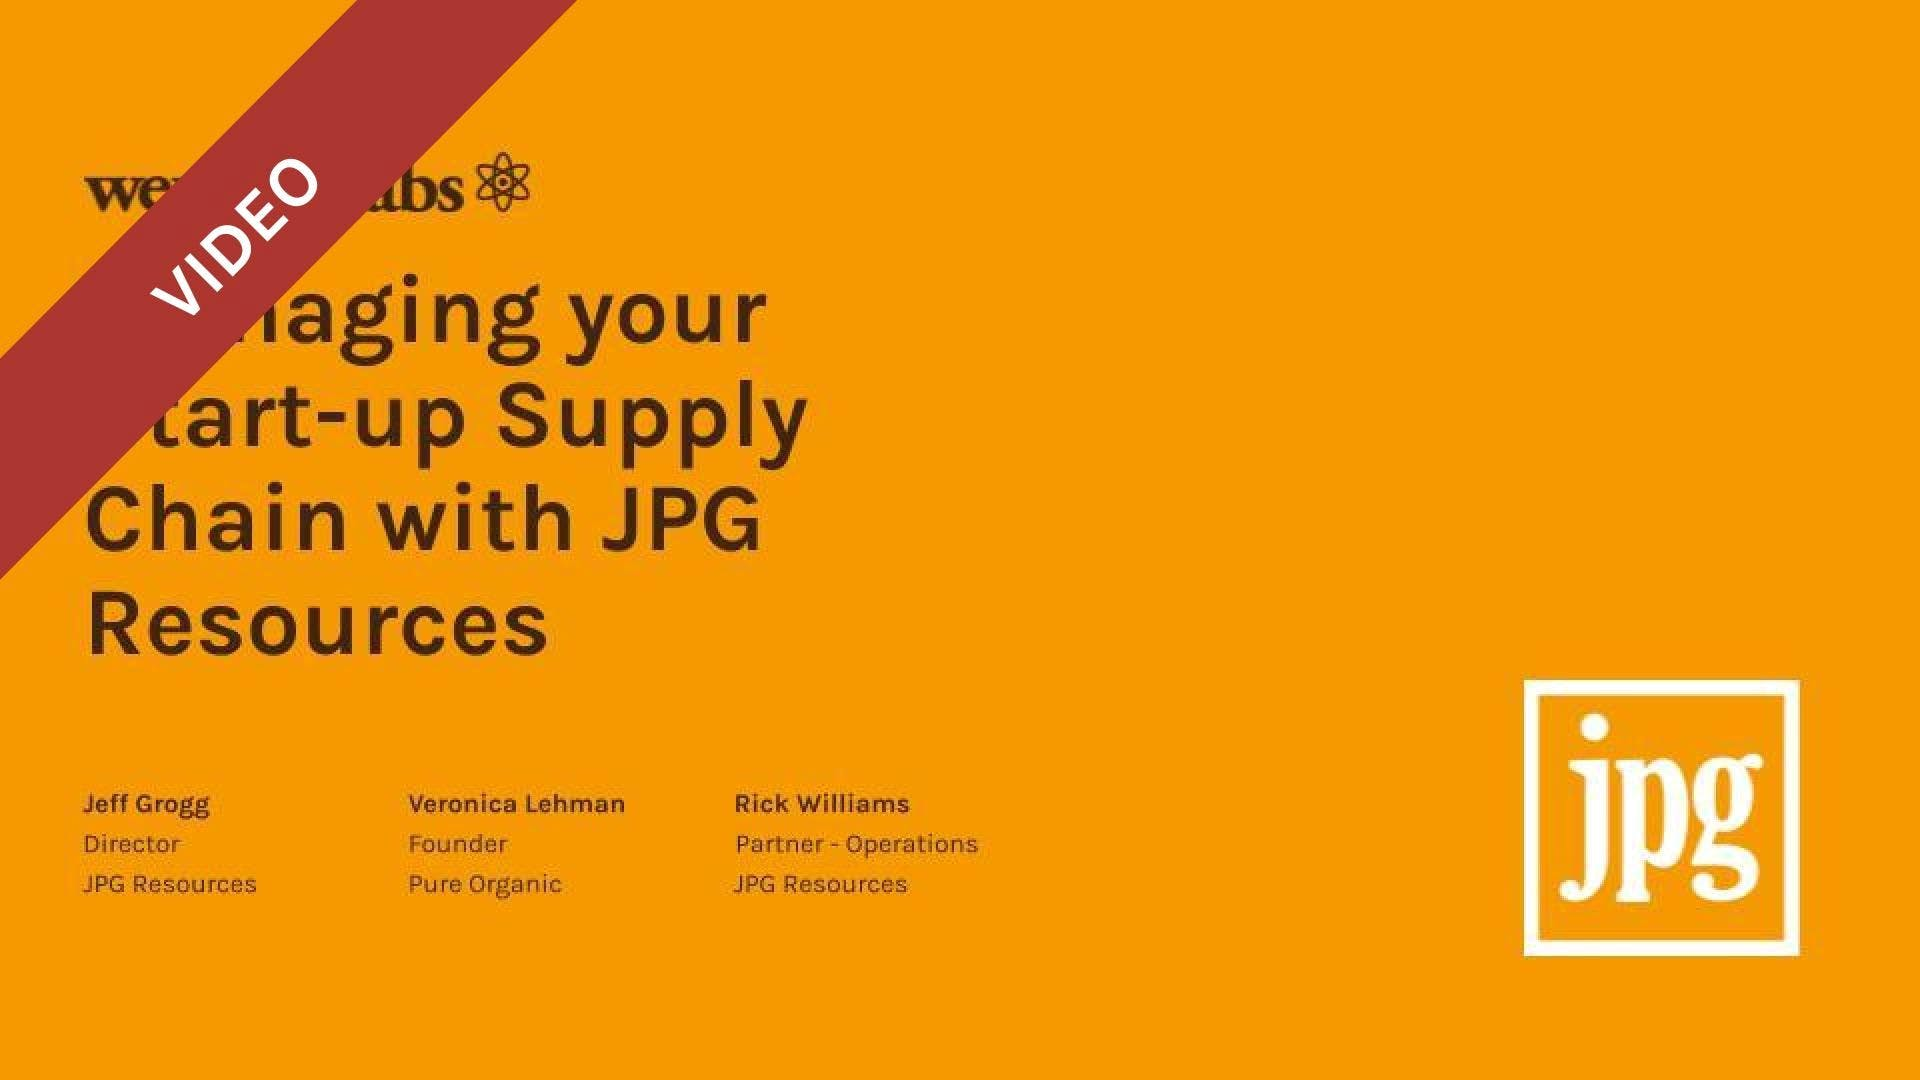 Tips for Managing your Start-up Supply Chain with JPG Resources